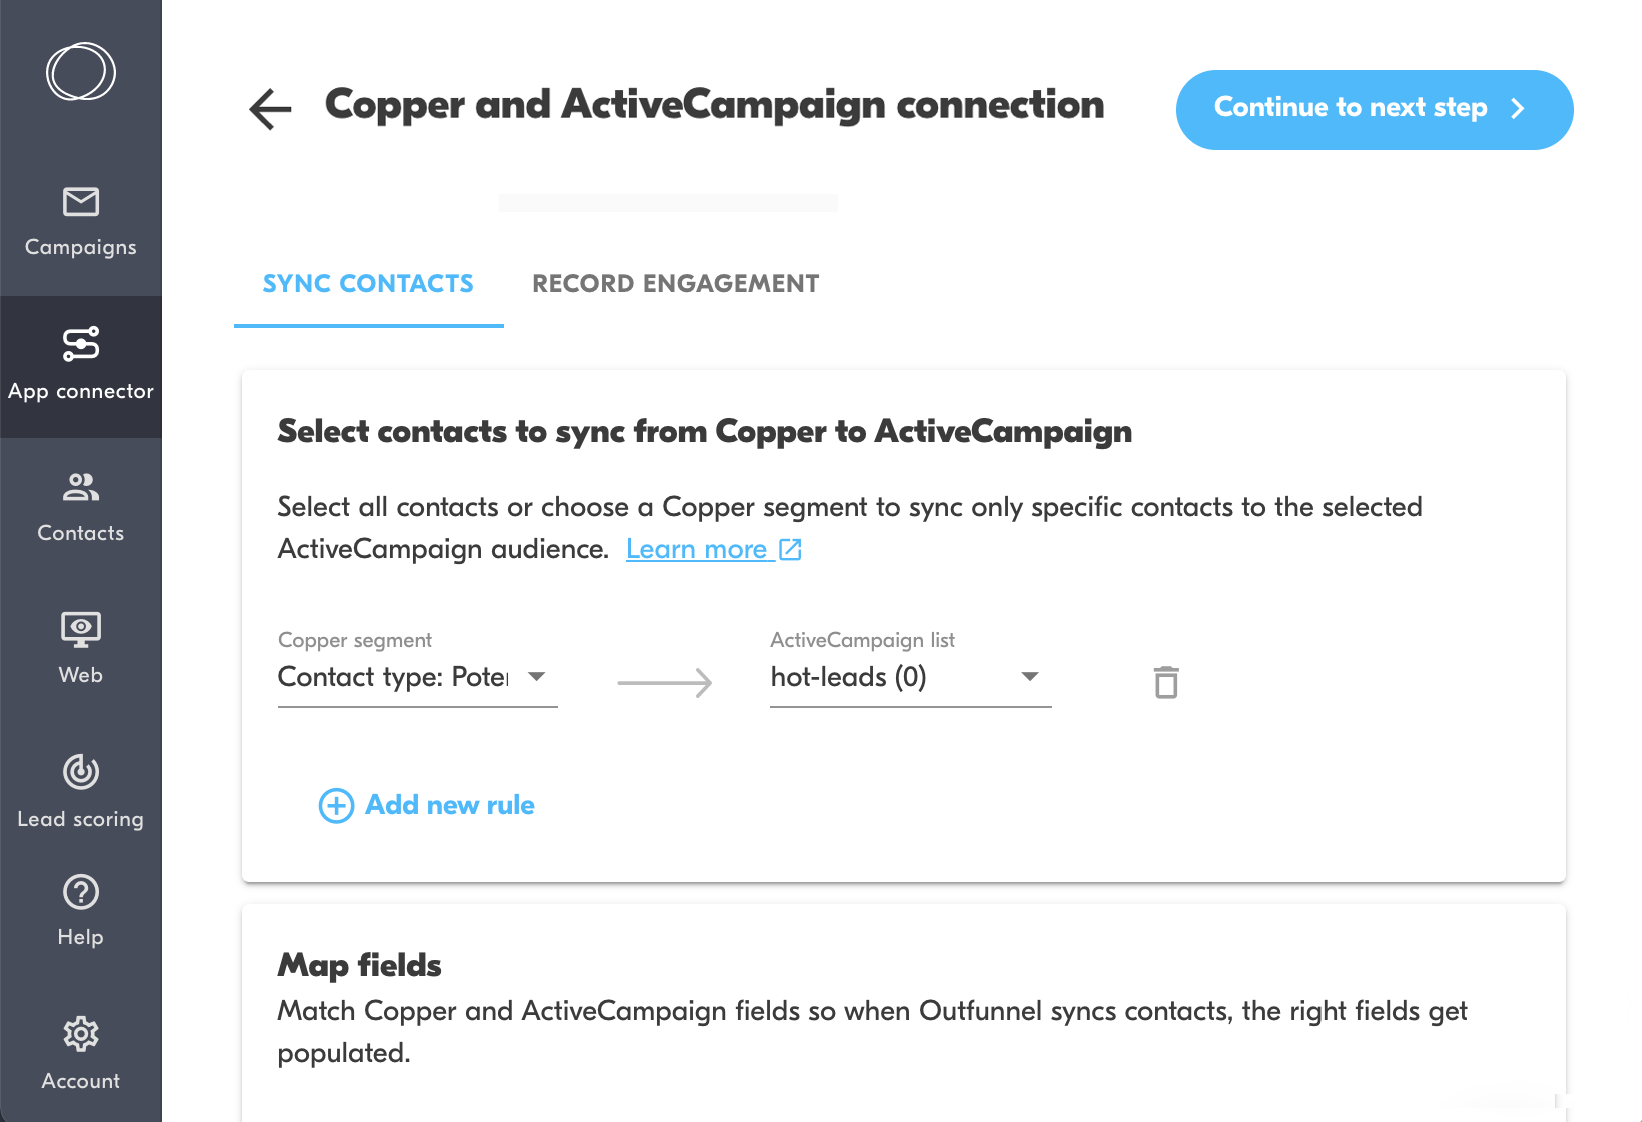 copper and activecampaign connection